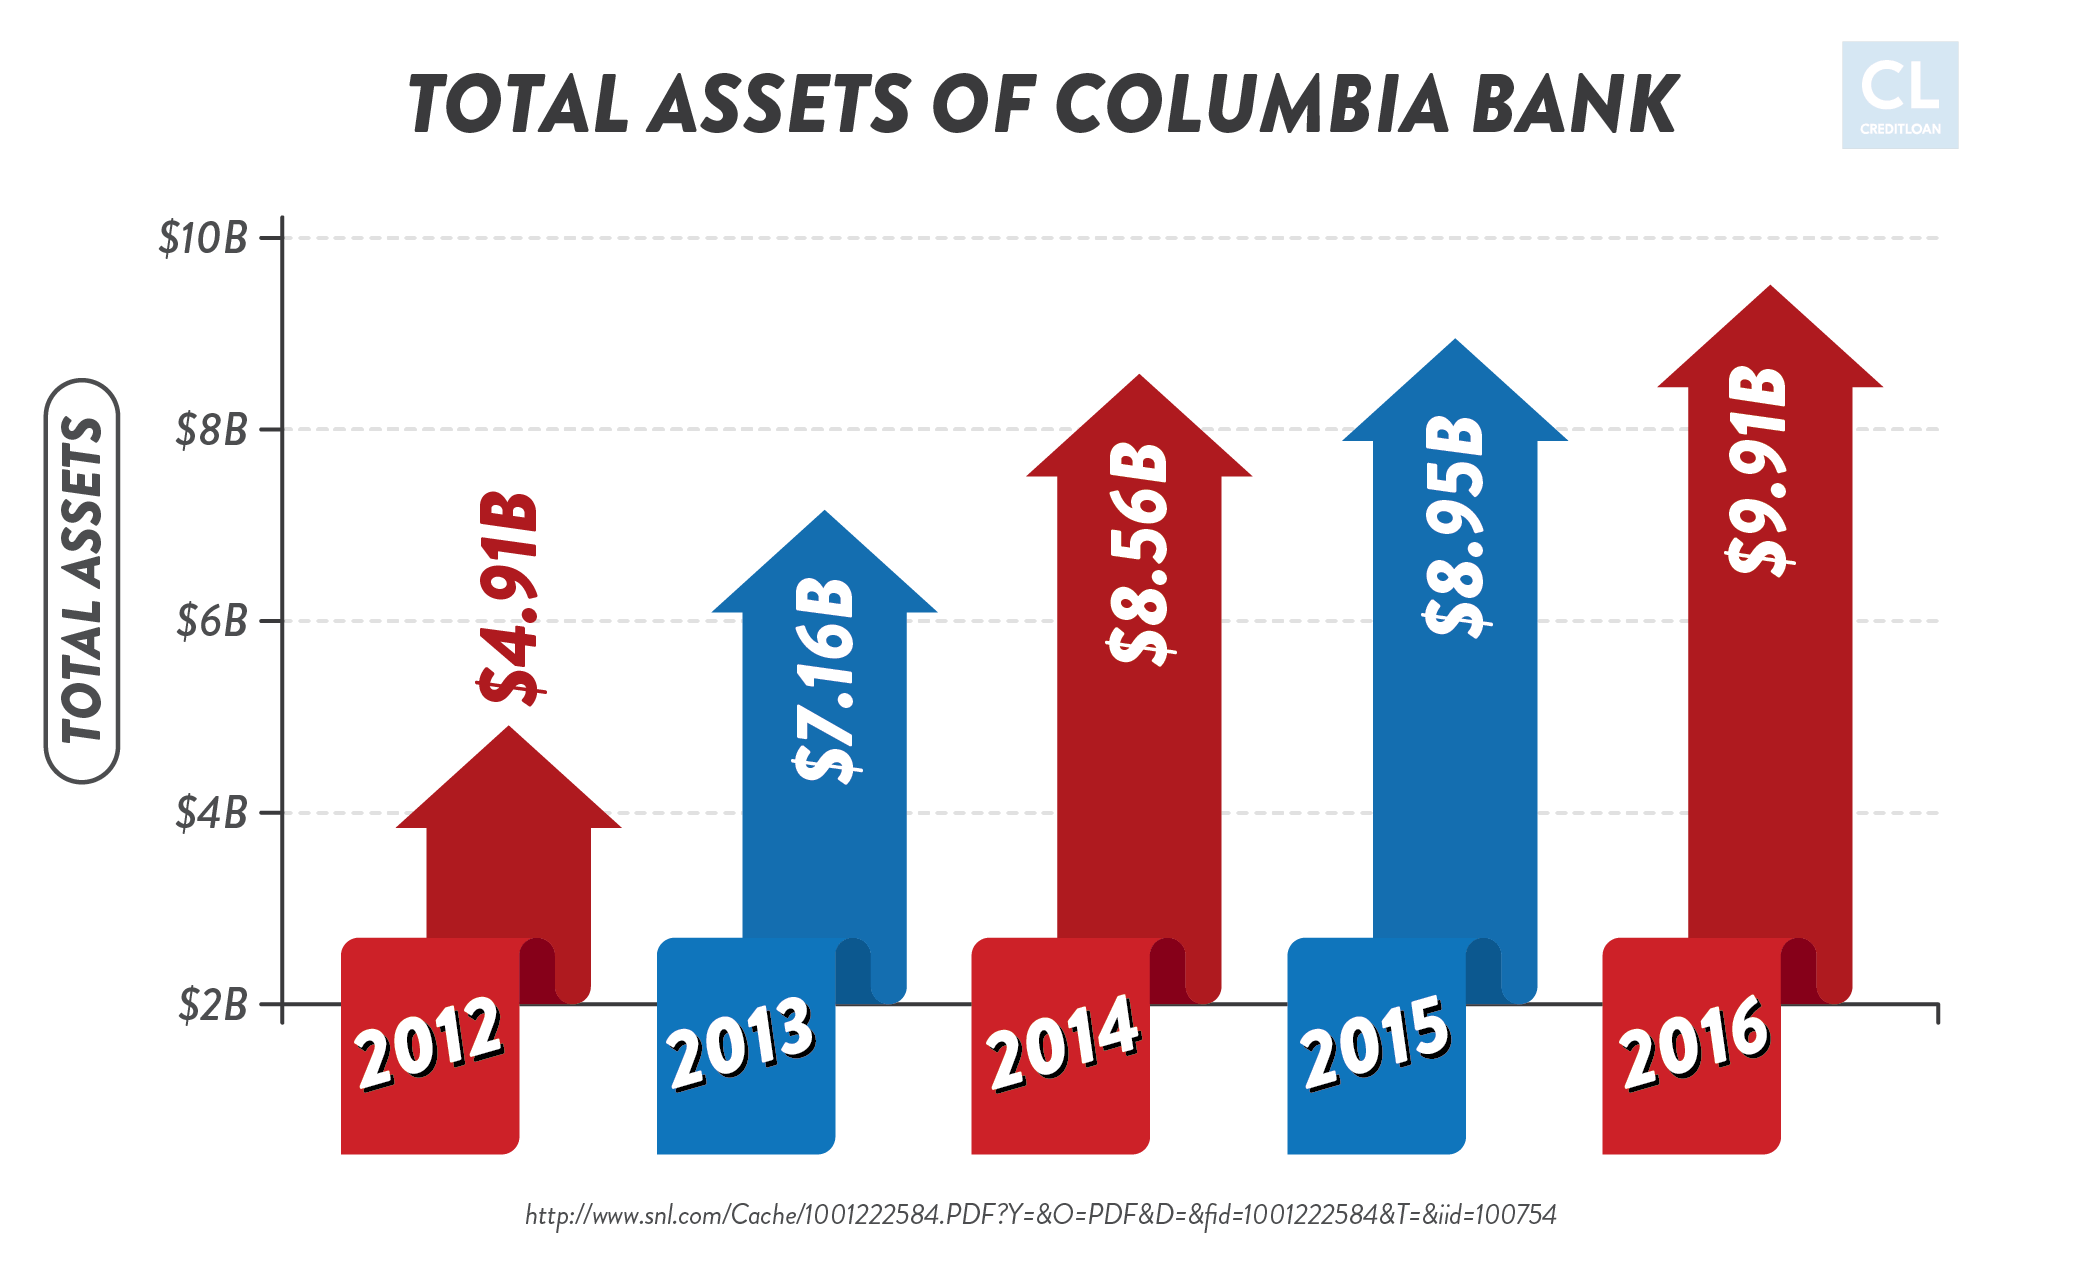 Total Assets of Columbia Bank from 2012-2016